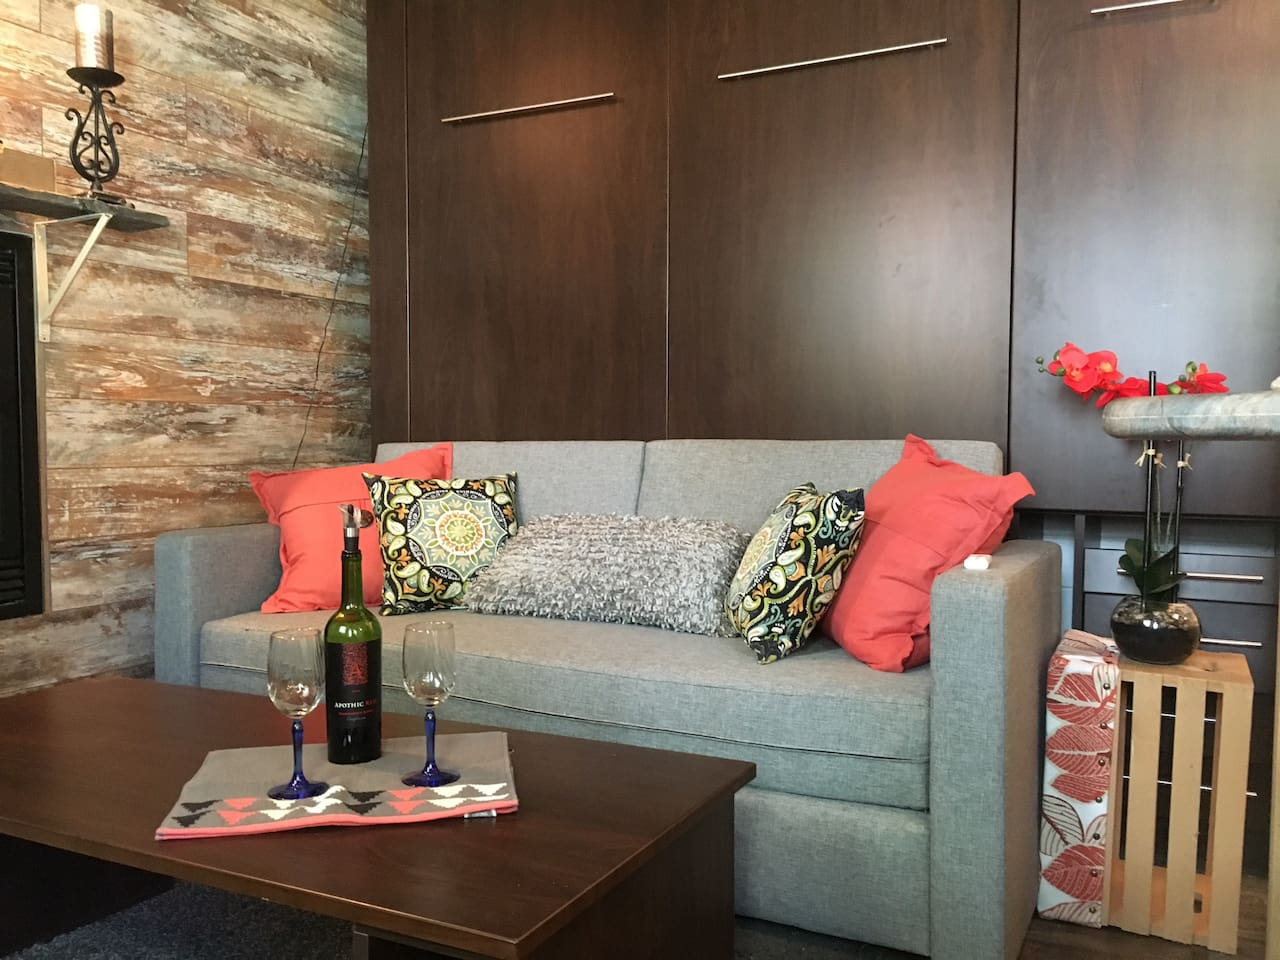 The living space includes a comfortable couch and coffee table, perfect for a romantic evening by the fireplace or quiet movie night with Smart TV.